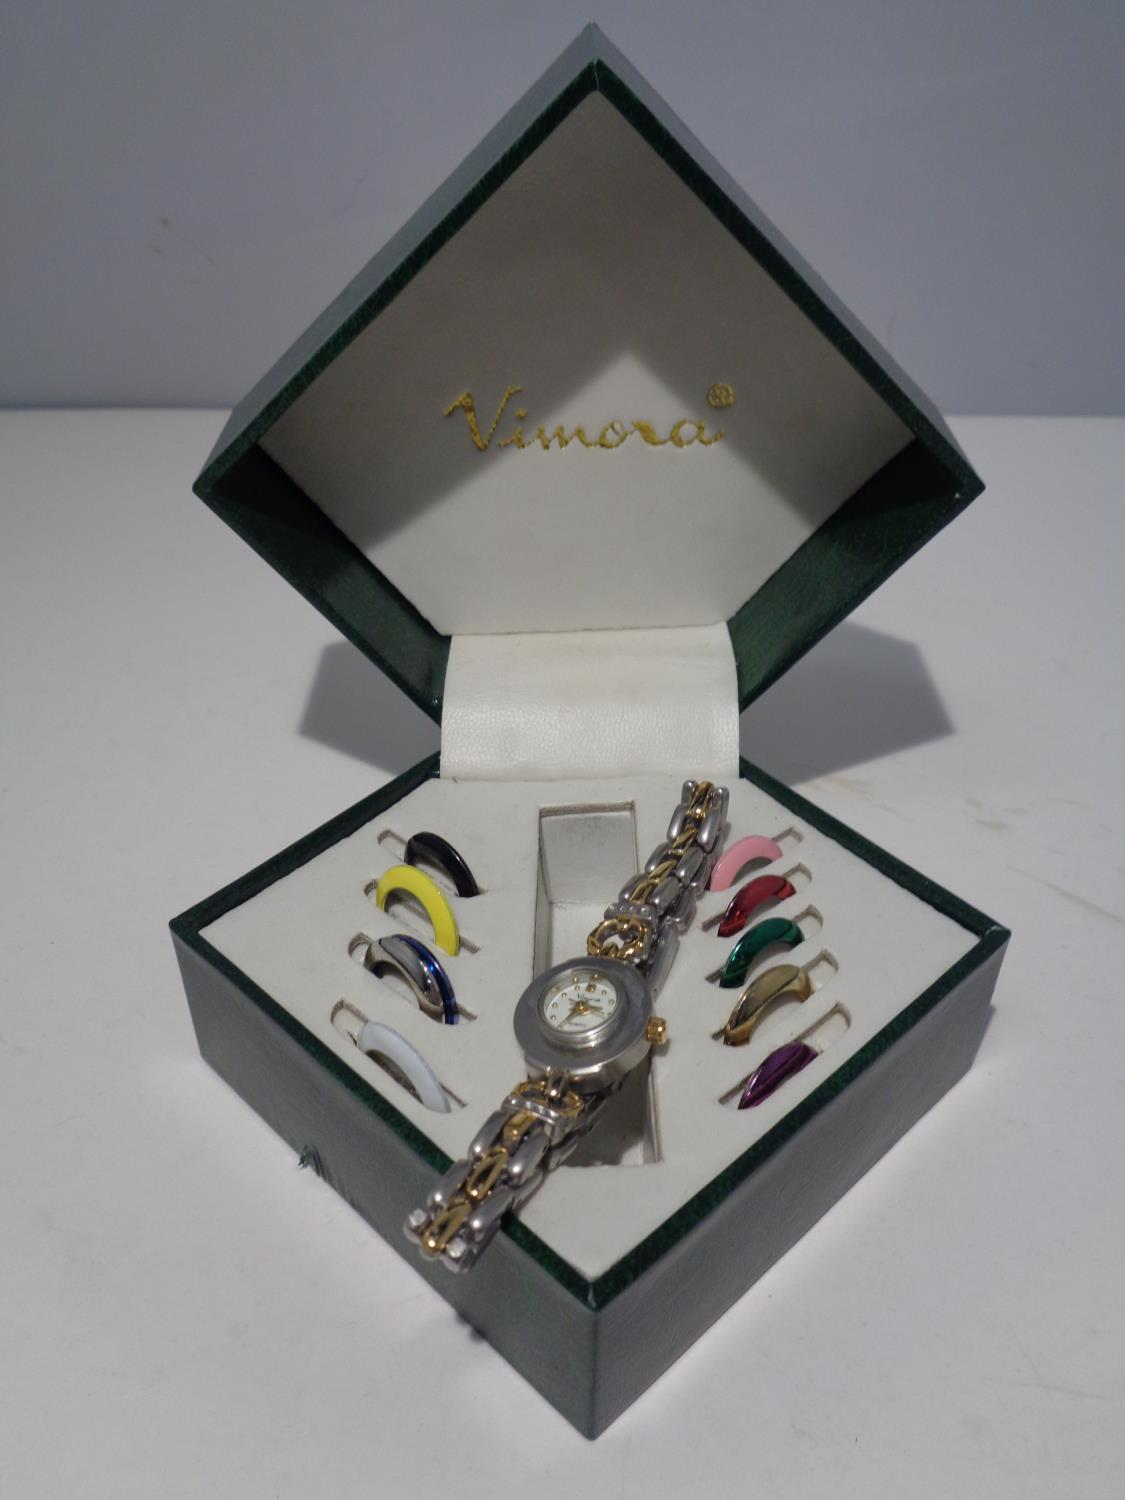 A VIMORA BOXED WATCH WITH COLOURED INTERCHANGEABLE WATCH FACE SURROUNDINGS - Image 2 of 6